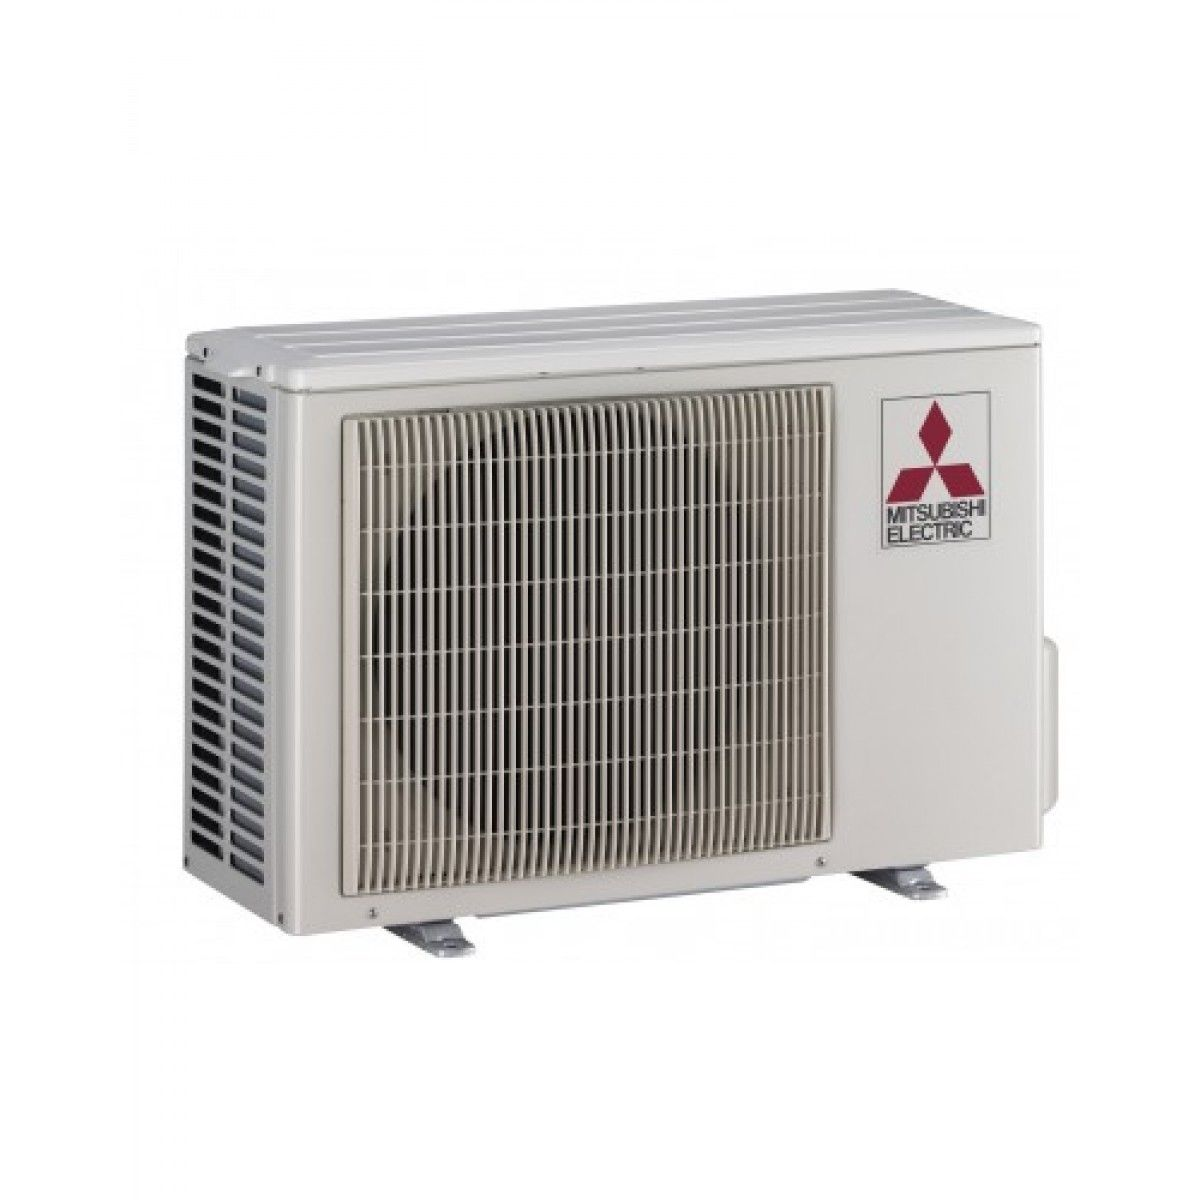 20.5 SEER Cooling Only System in Mitsubishi Ductless Air Conditioners  #614746